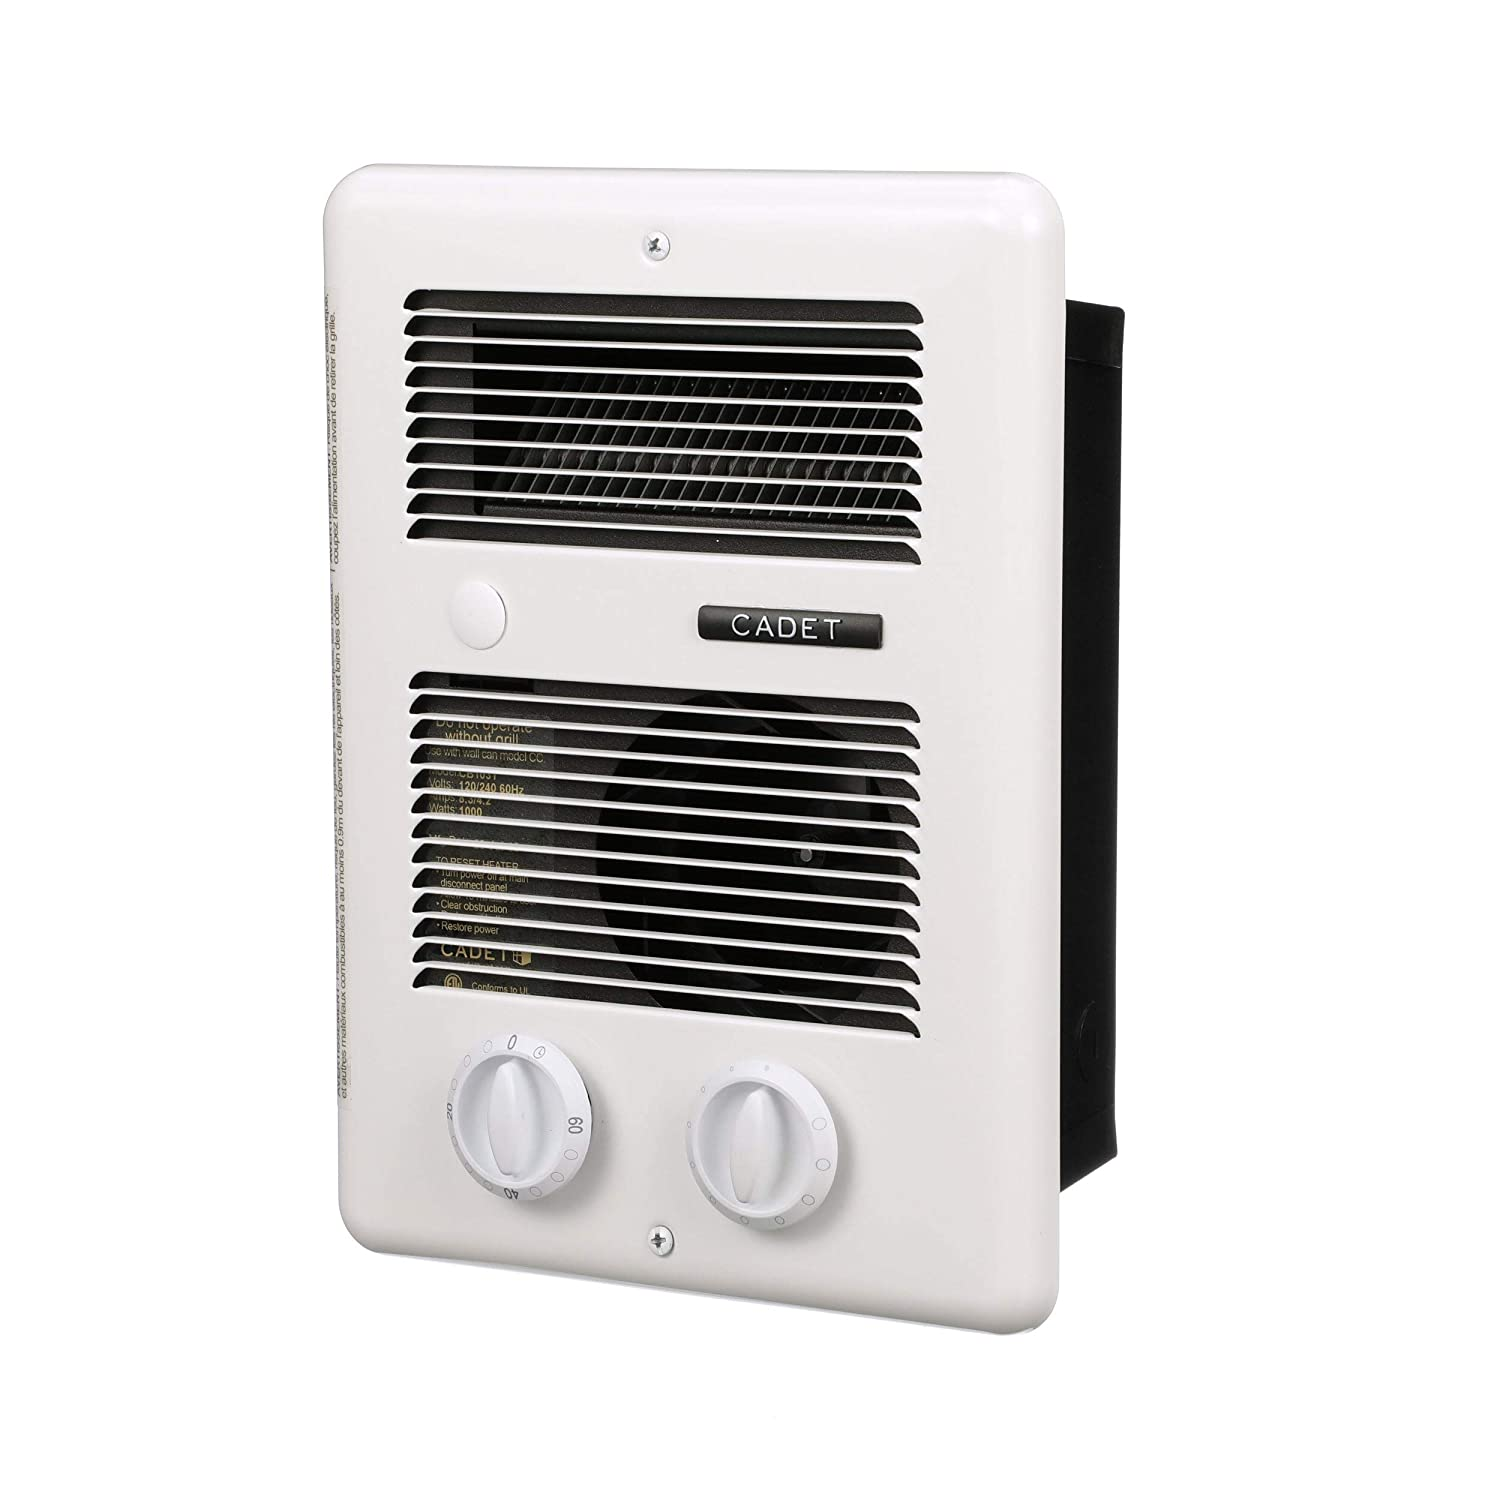 Amazon Com Cadet Com Pak Bath 1000w 120v 240v Best Bathroom Electric Wall Heater With Thermostat And Timer White Industrial Scientific